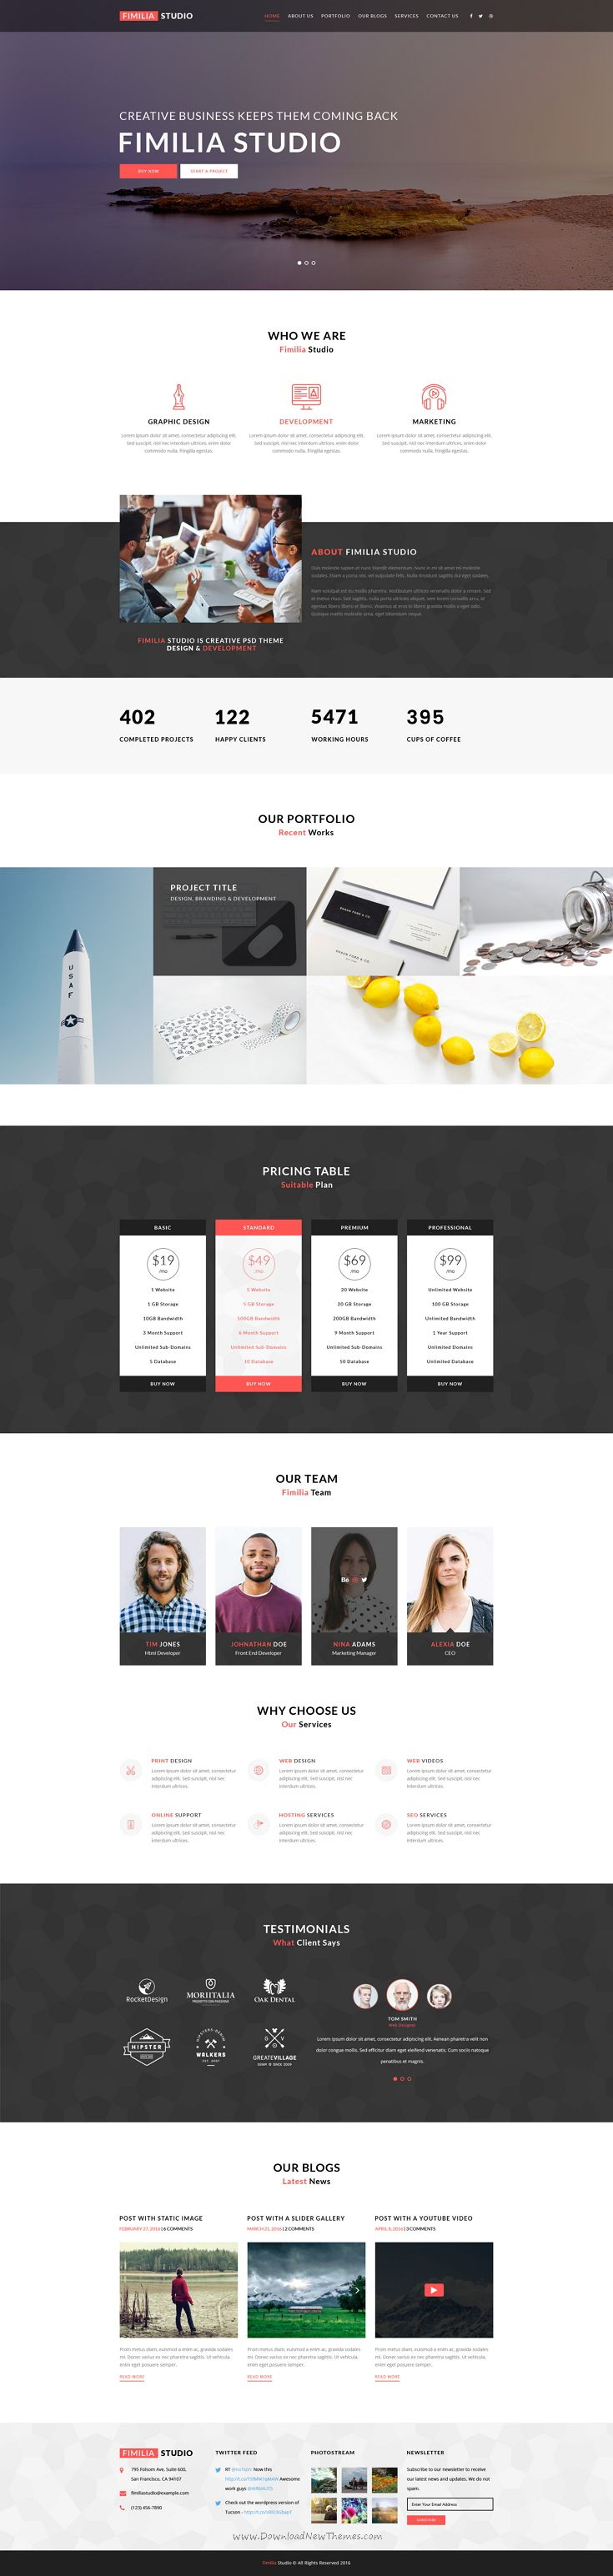 Fimilia Studio is modern multipurpose One Page #PSD #template for corporate business or personal #portfolio website. Download Now!